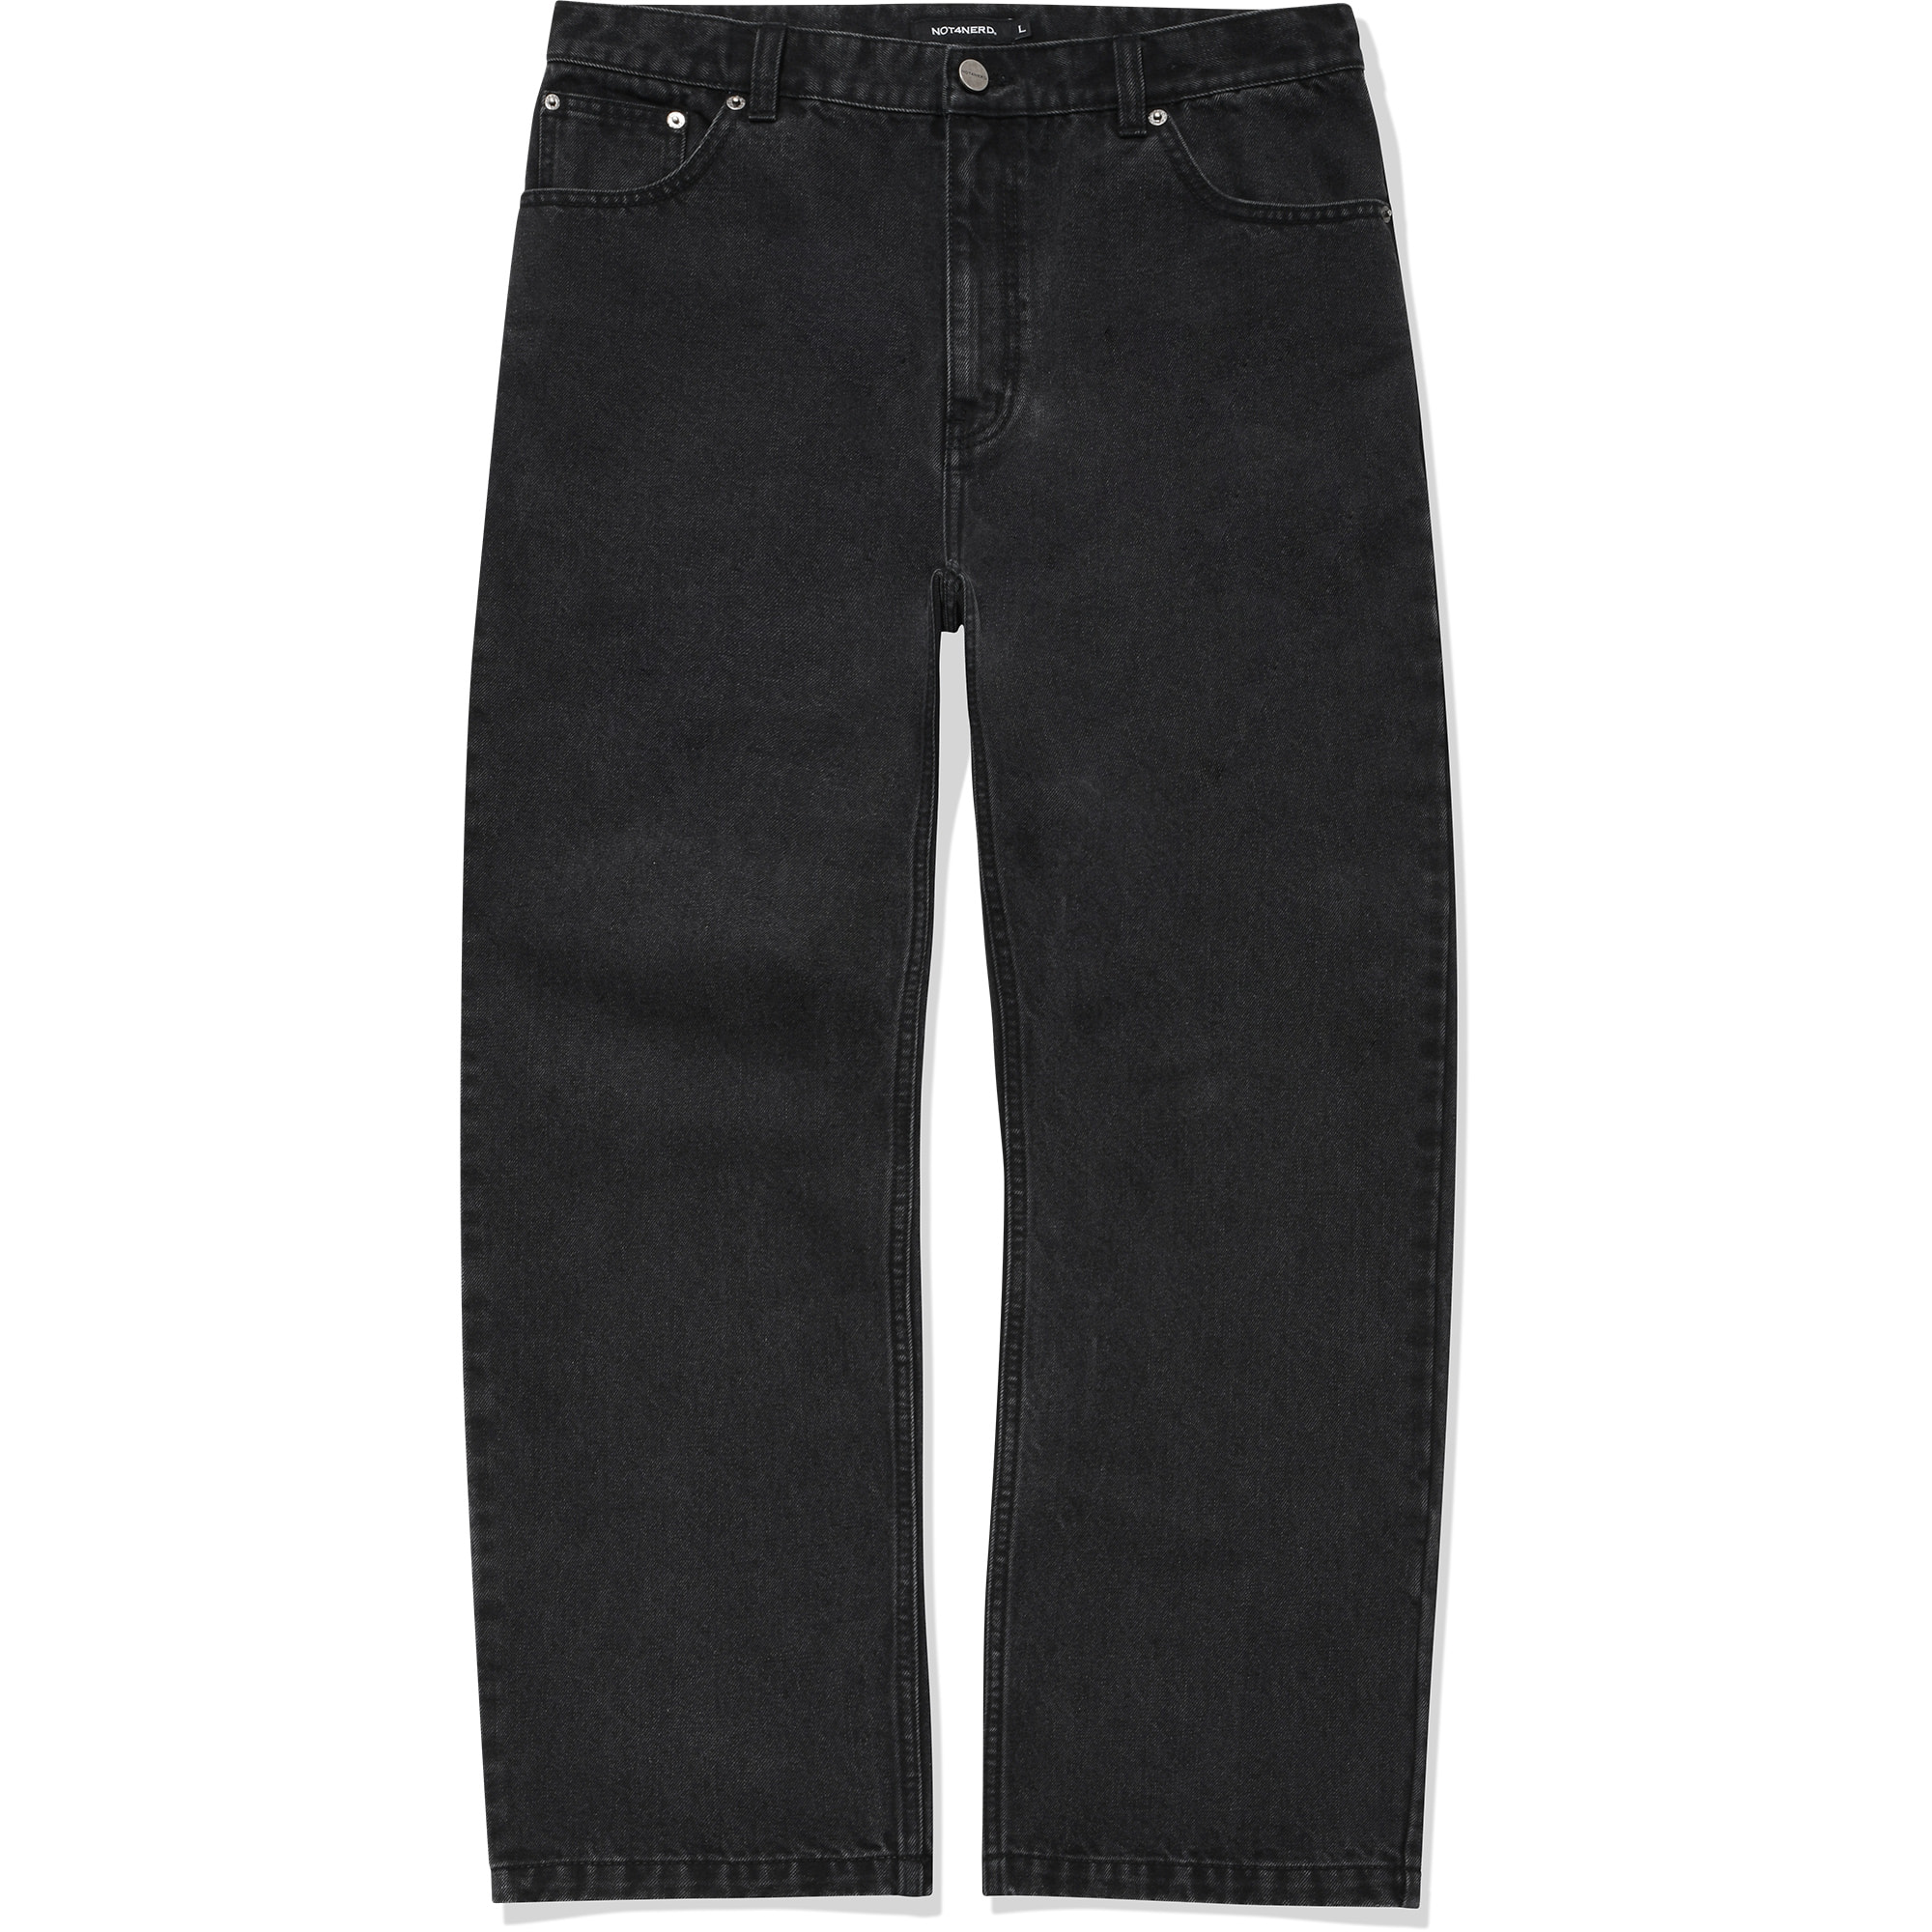 Card Wallet Wide Denim Pants[Black],NOT4NERD